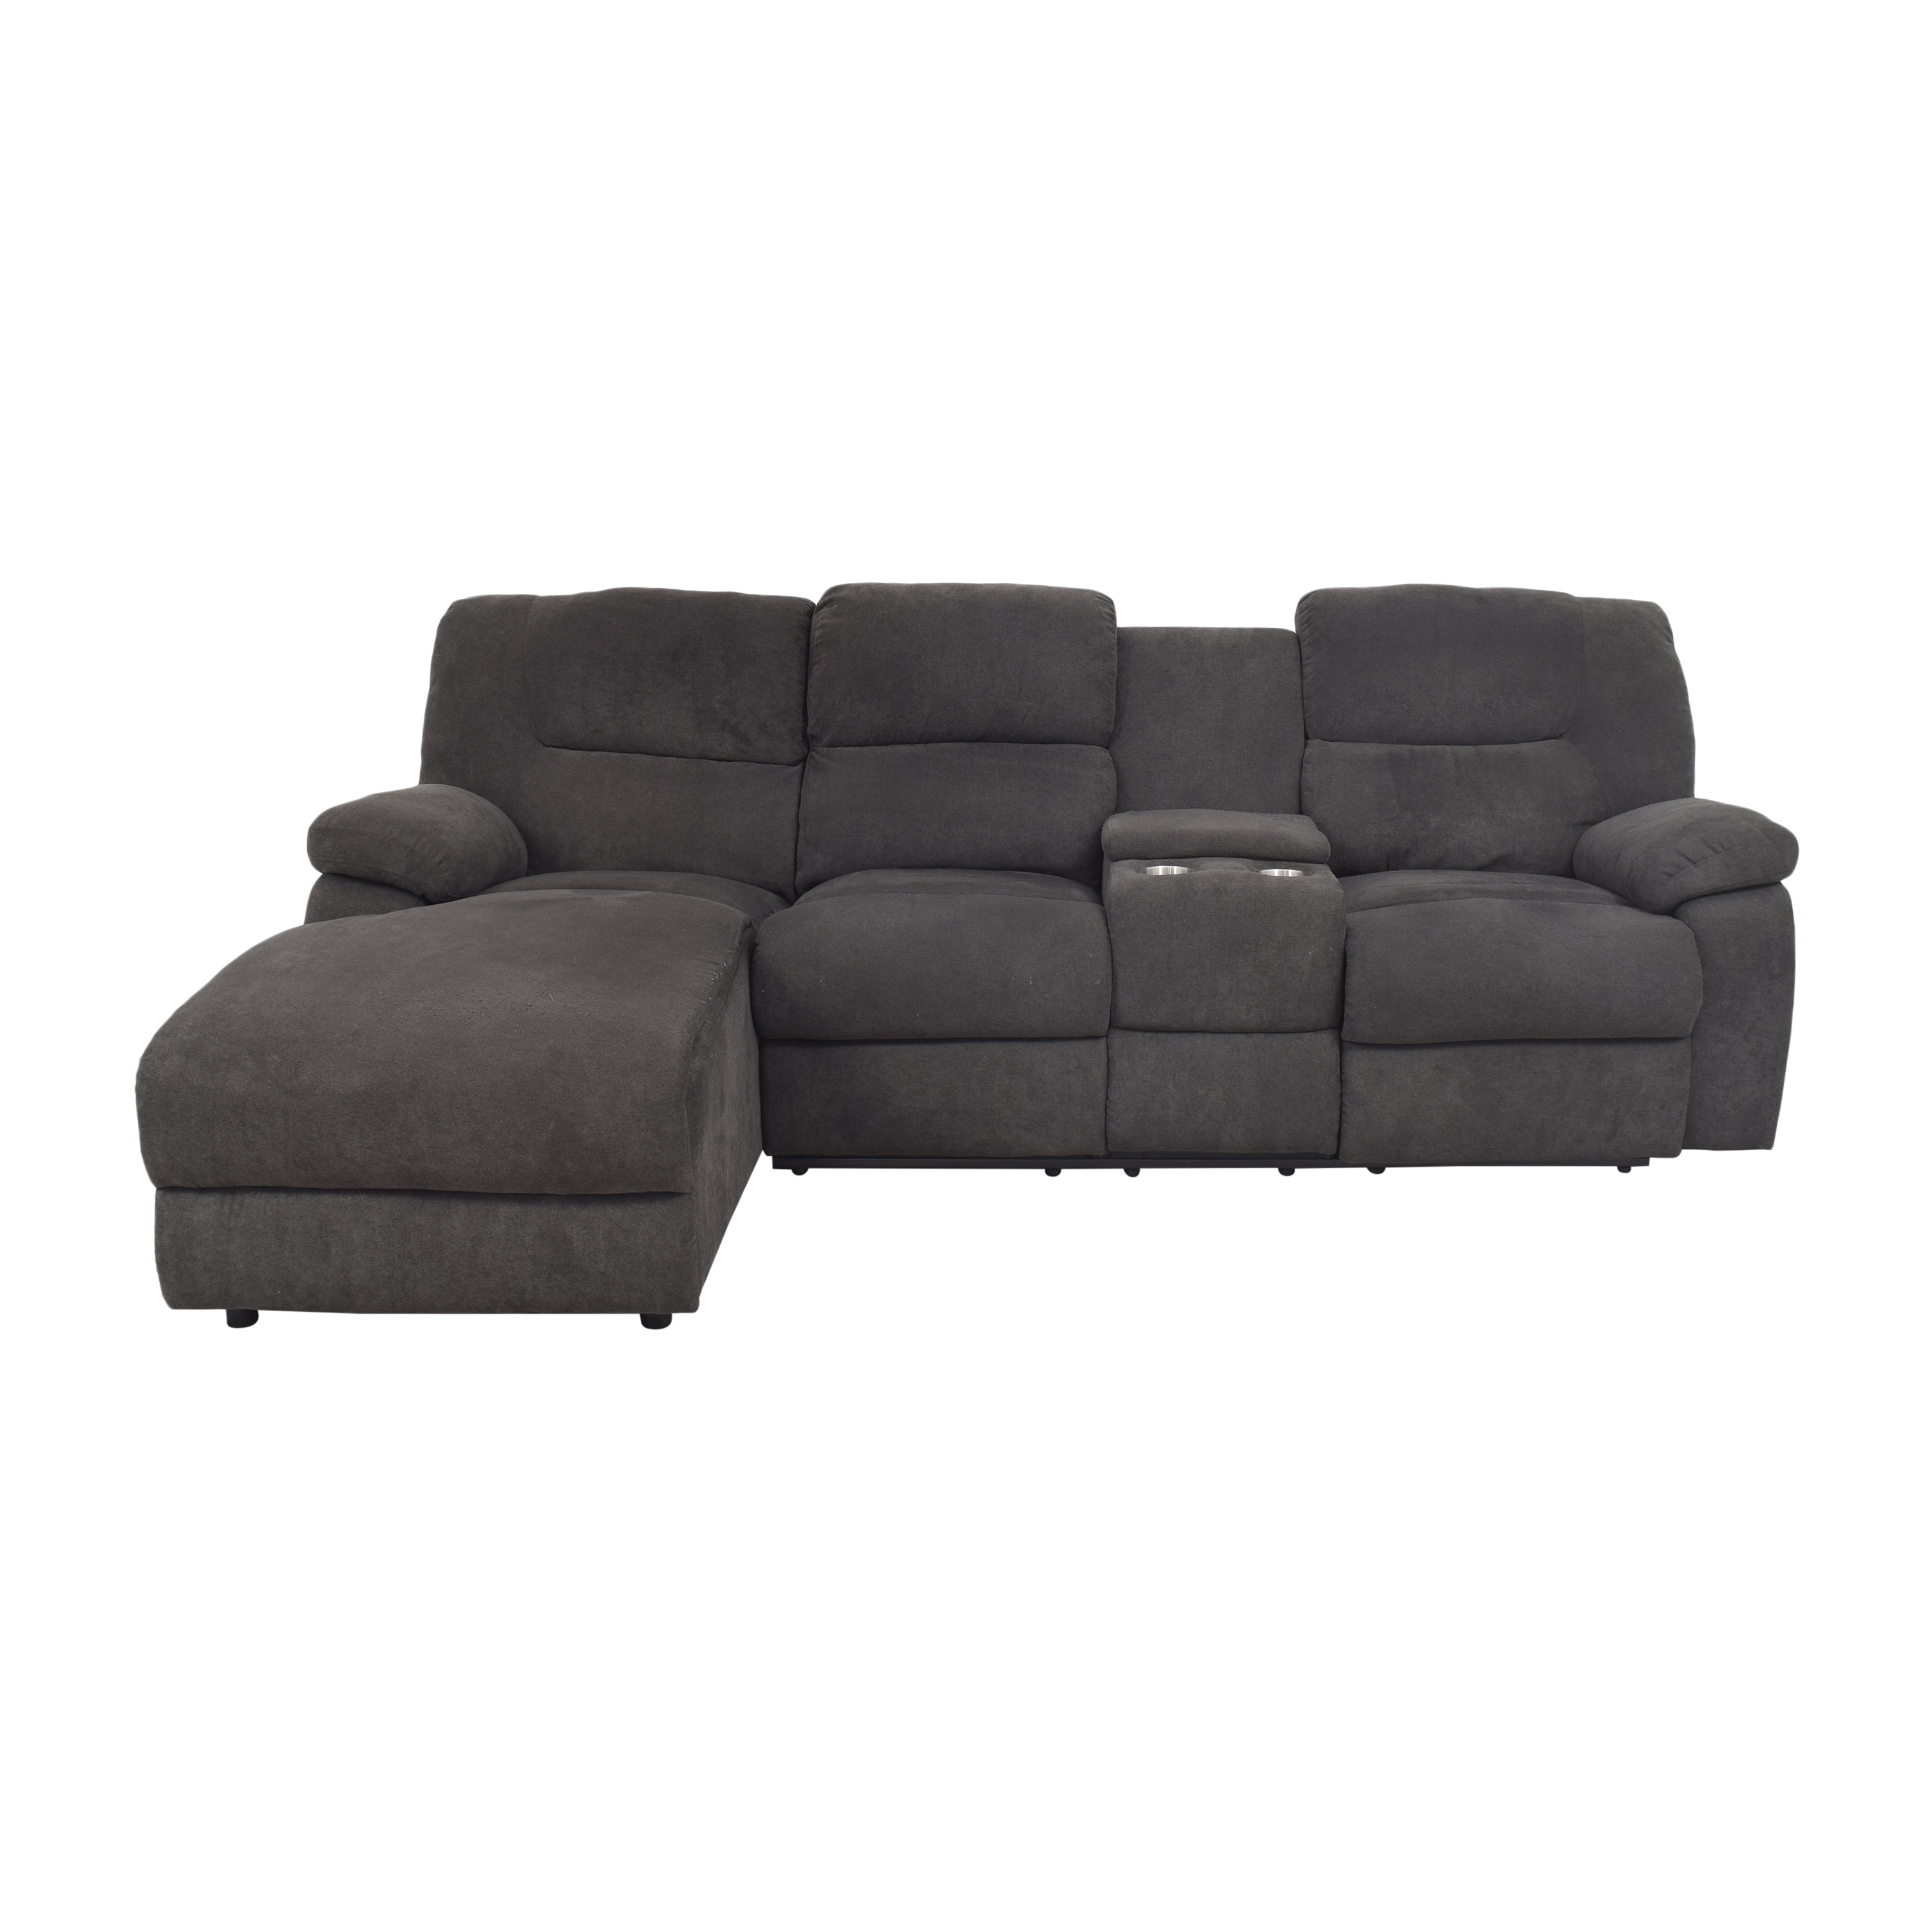 Wayfair Wayfair Wiss Reclining Chaise Sectional Sofa price